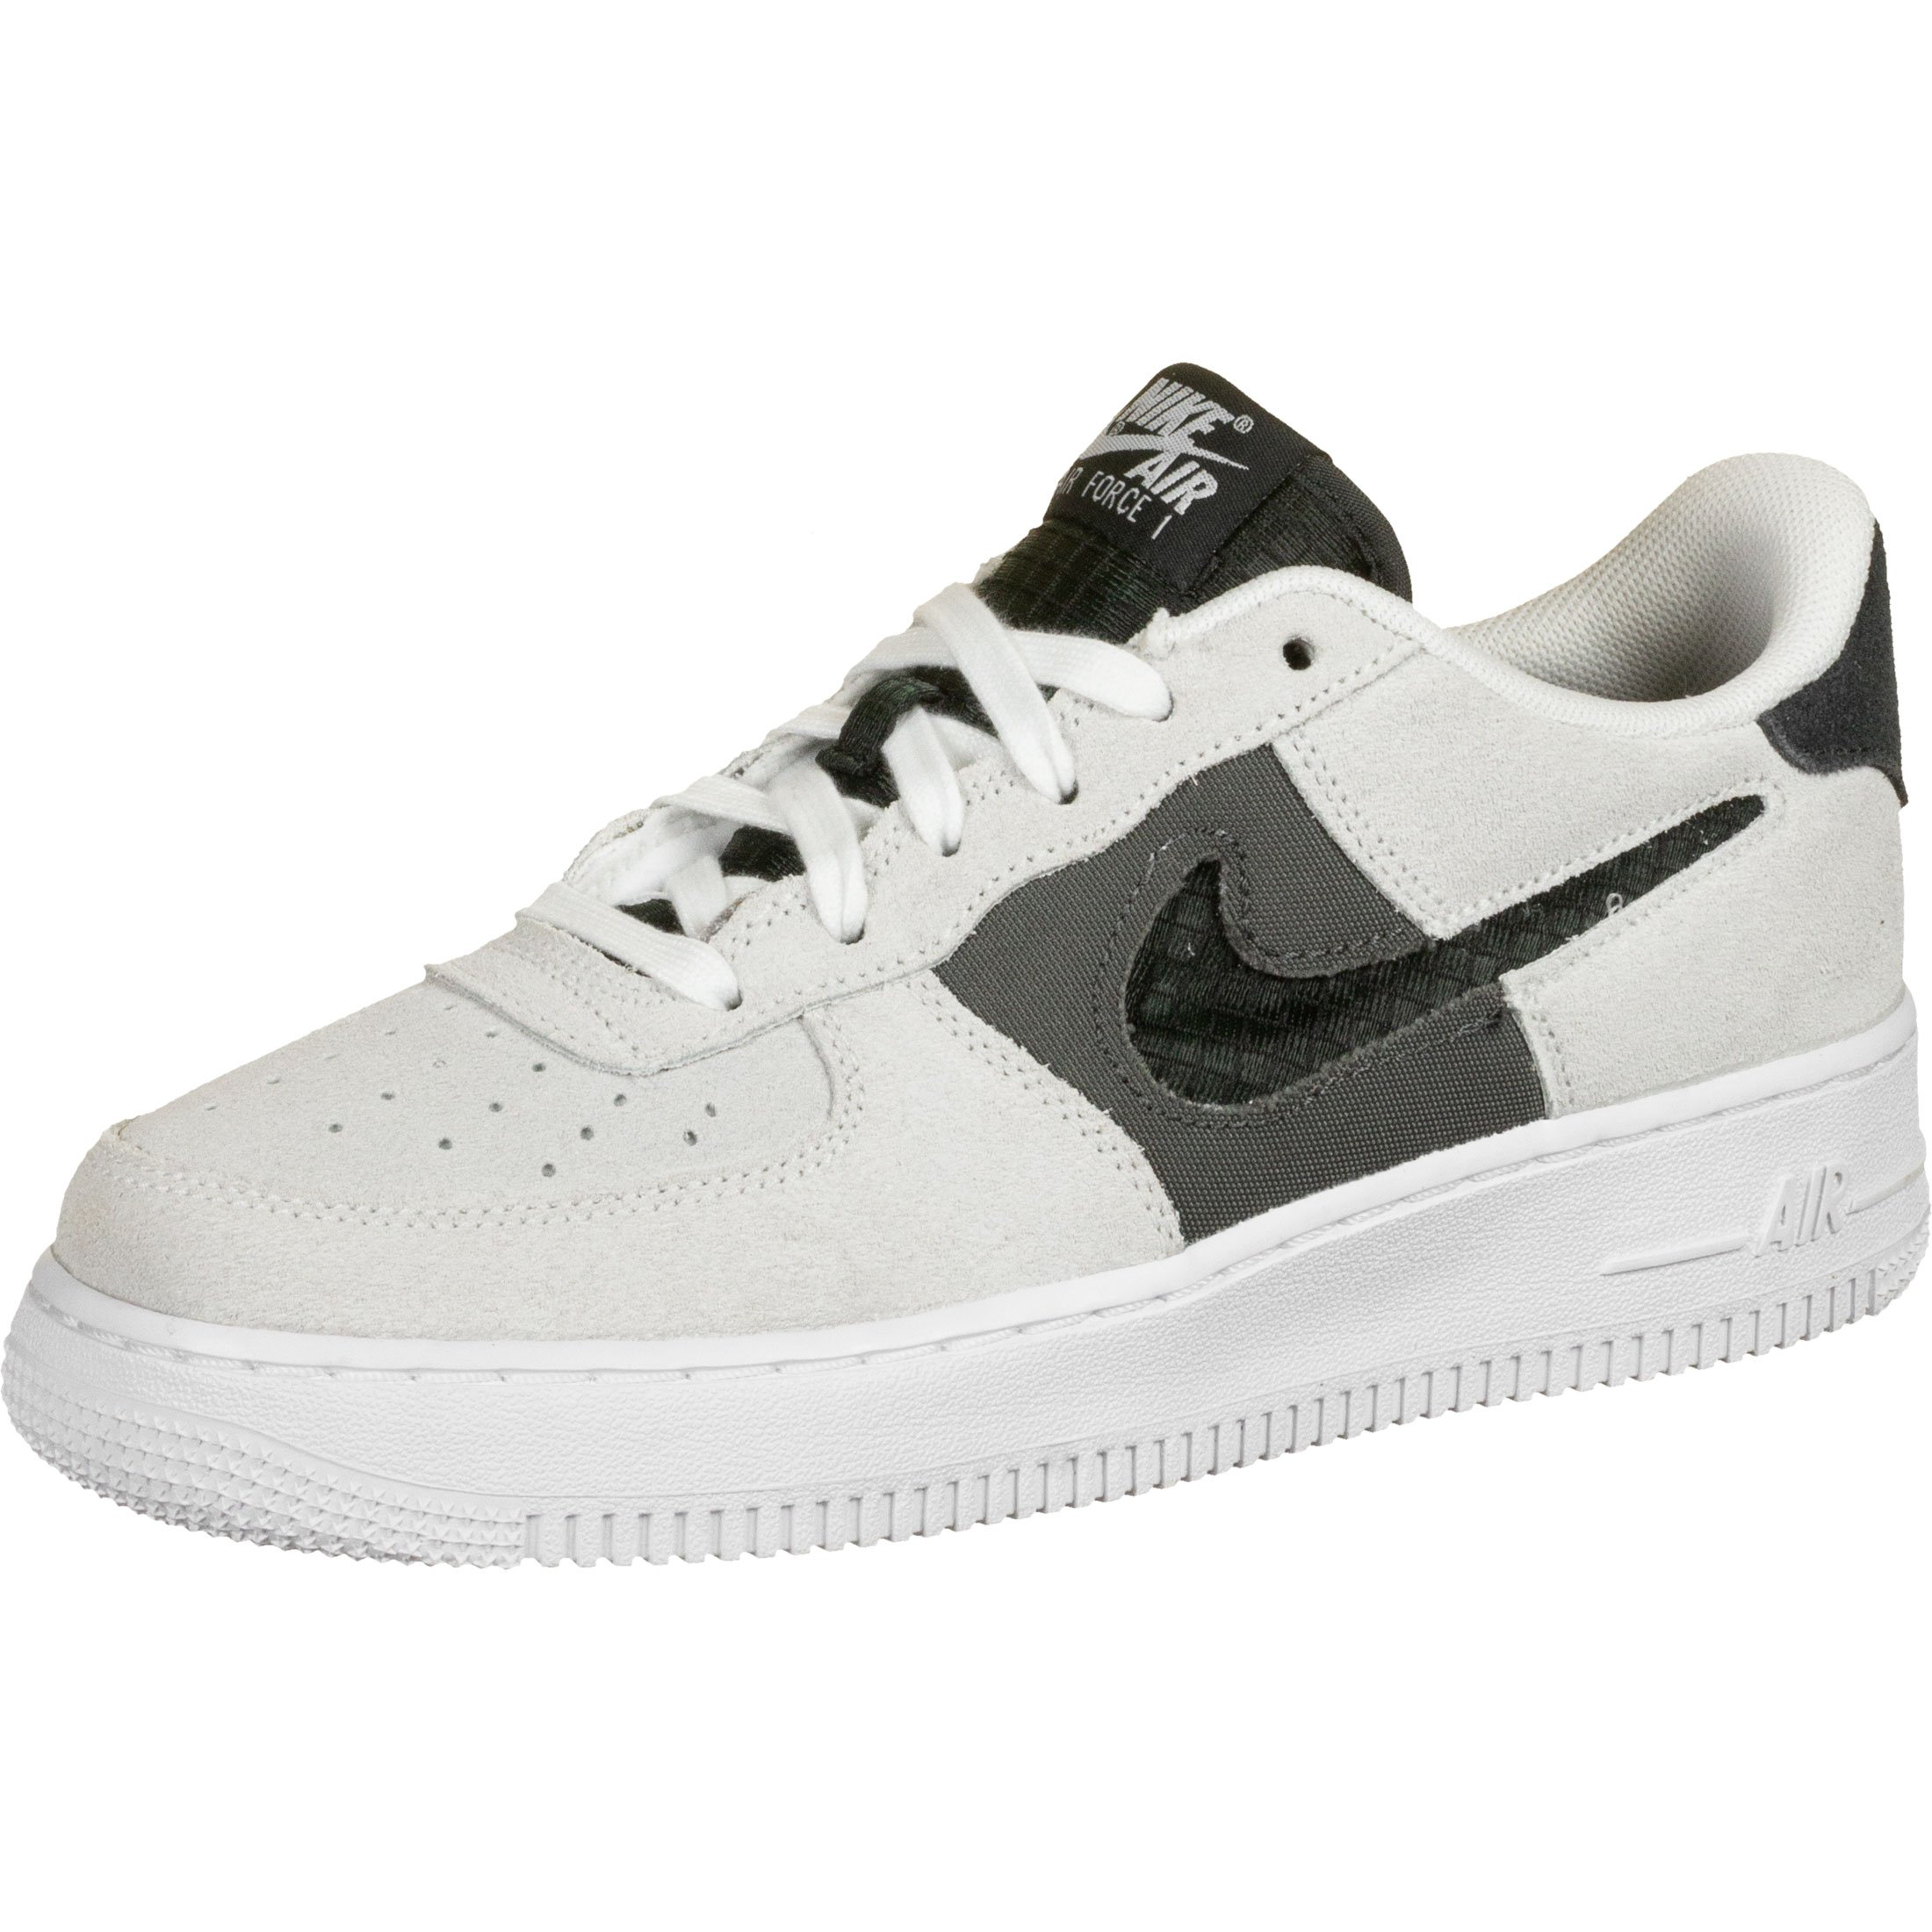 Air Force 1 LV8 Baskets low Hommes chez Stylefile